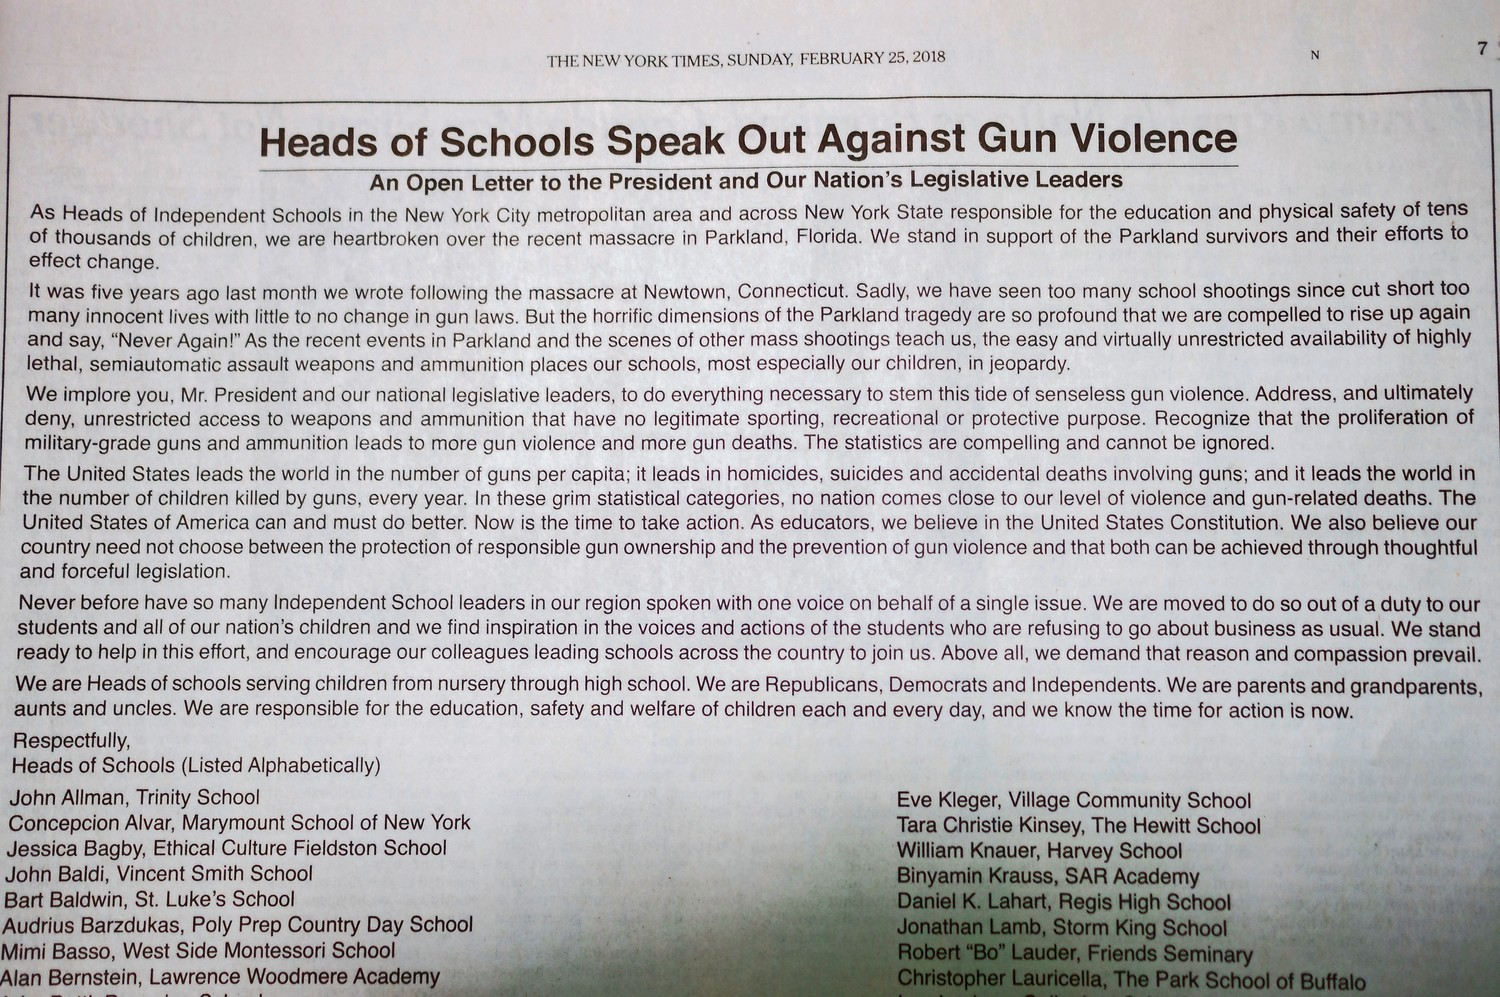 The heads of schools in New York City and New York State signed an open letter to the federal government in a full-page advertisement in The New York Times. Collectively, they call for meaningful action to curb gun violence.